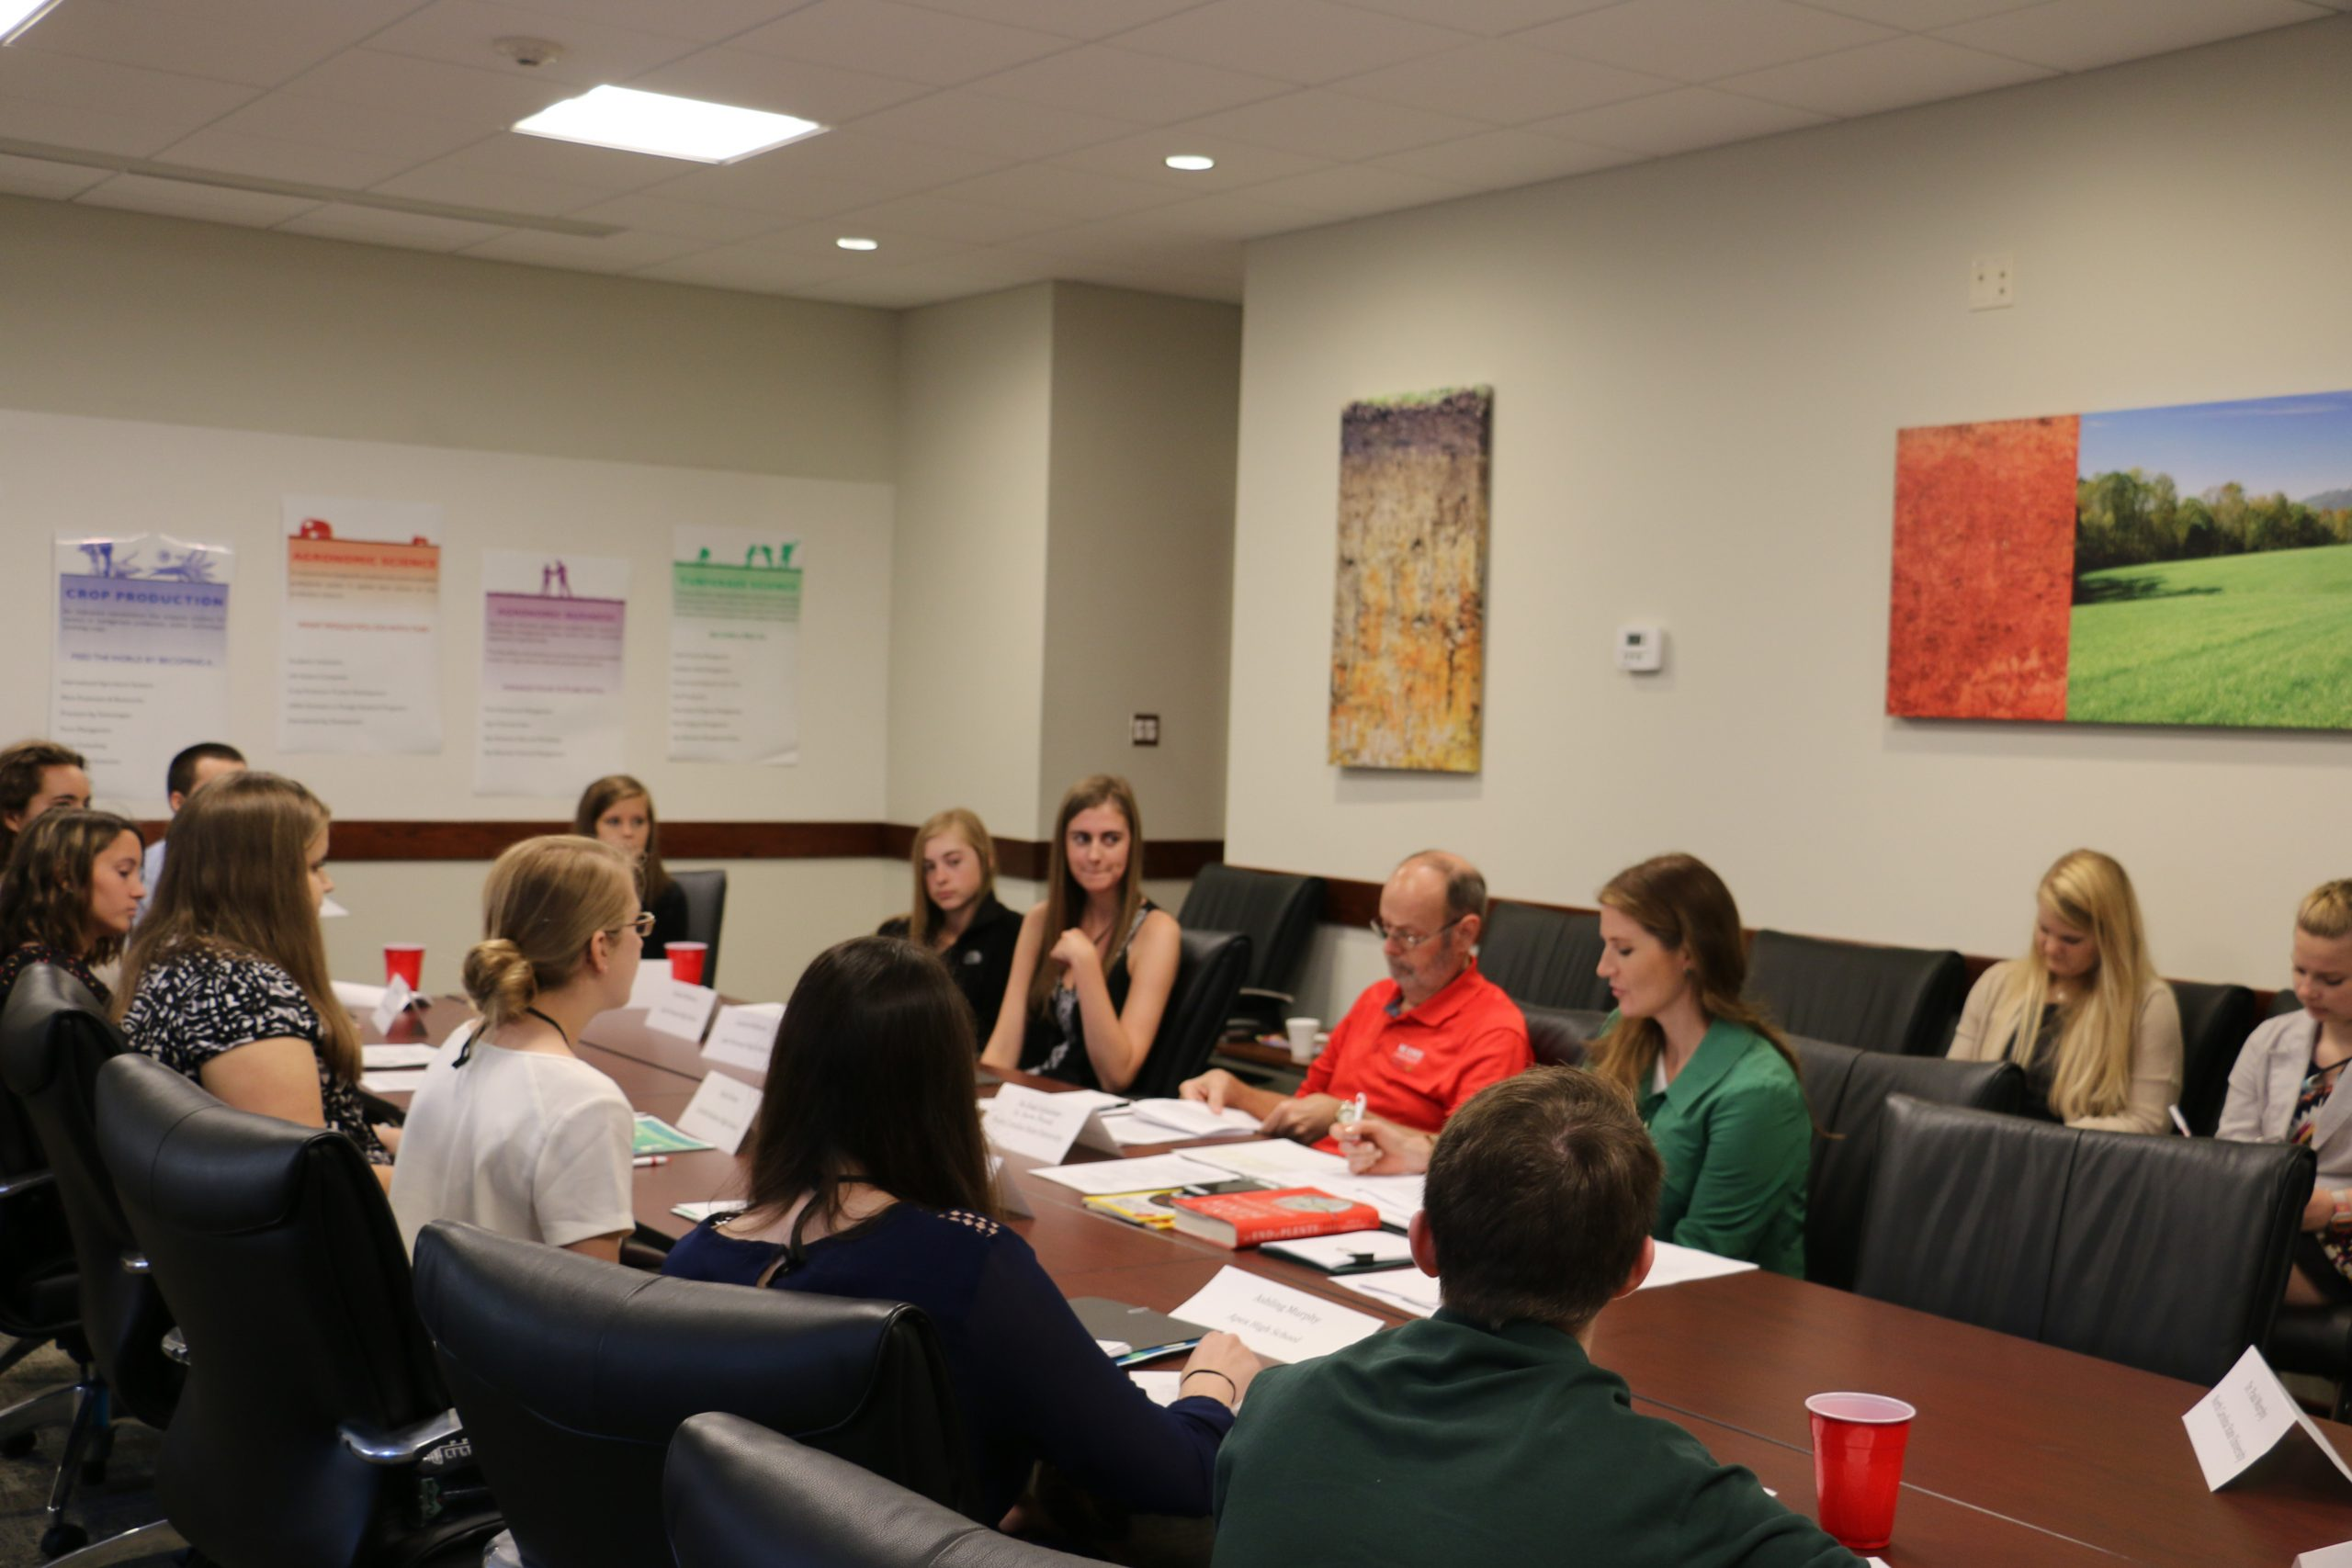 A large group of students seated around a conference table